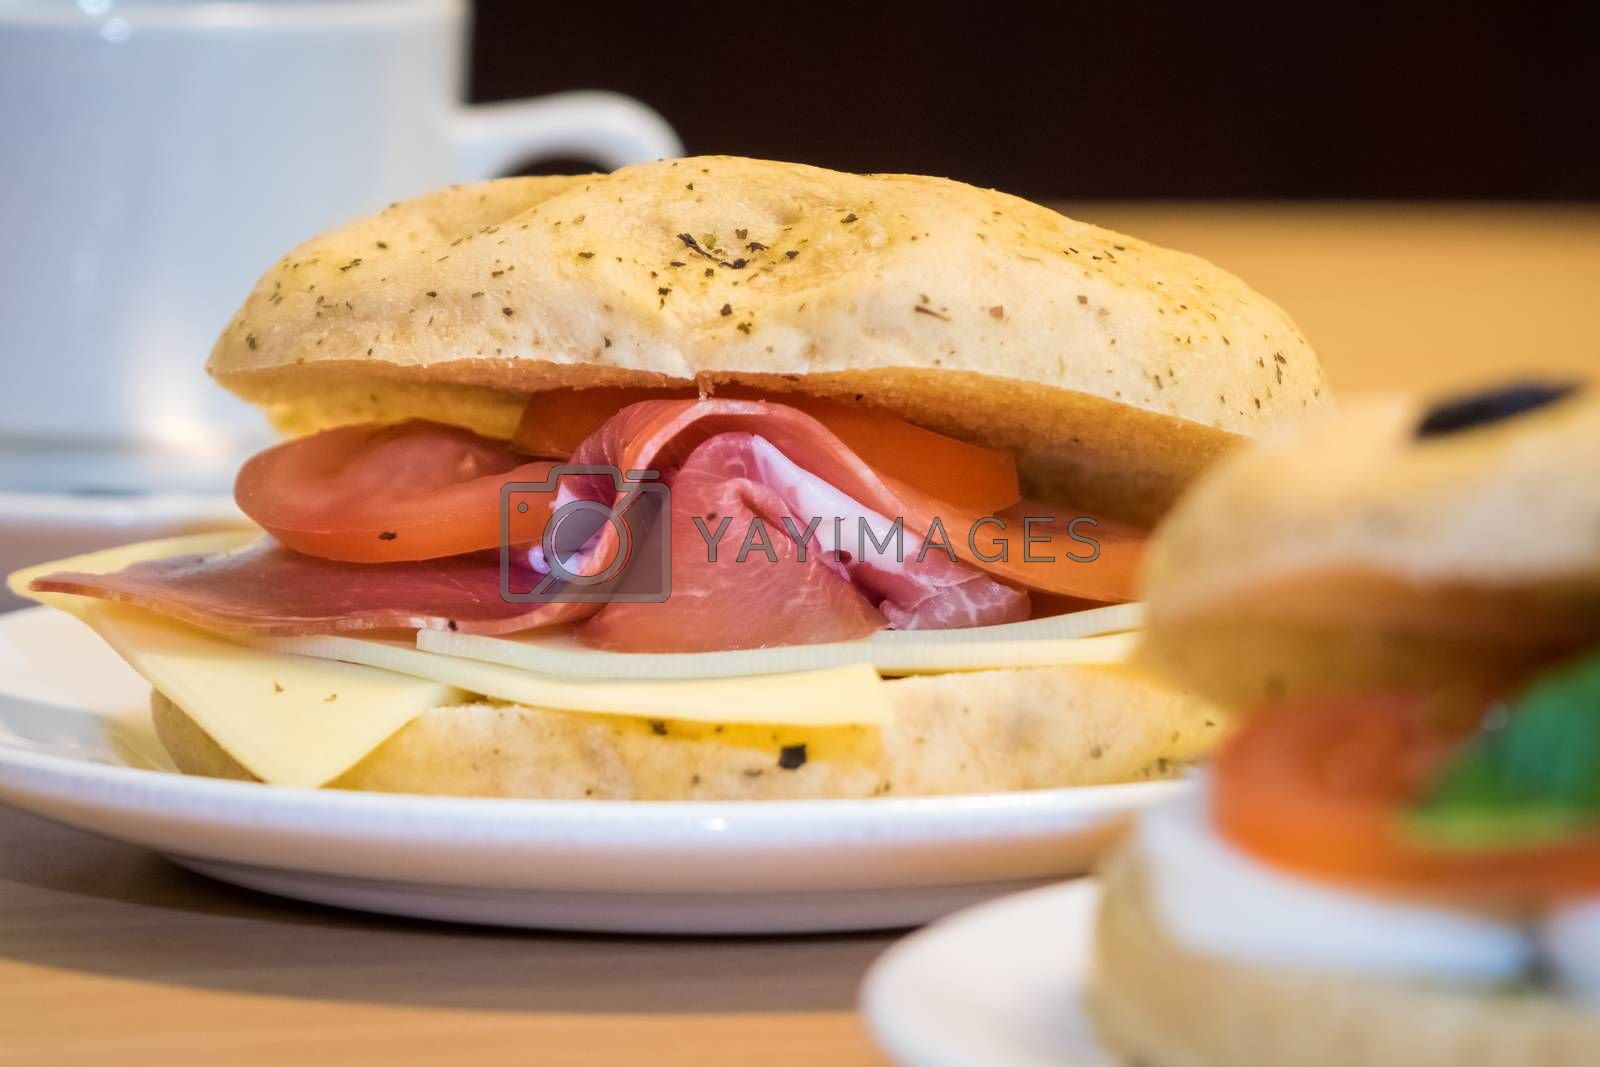 Breakfast bun on a plate, filled with cheddar cheese, prosciutto ham and tomatoes